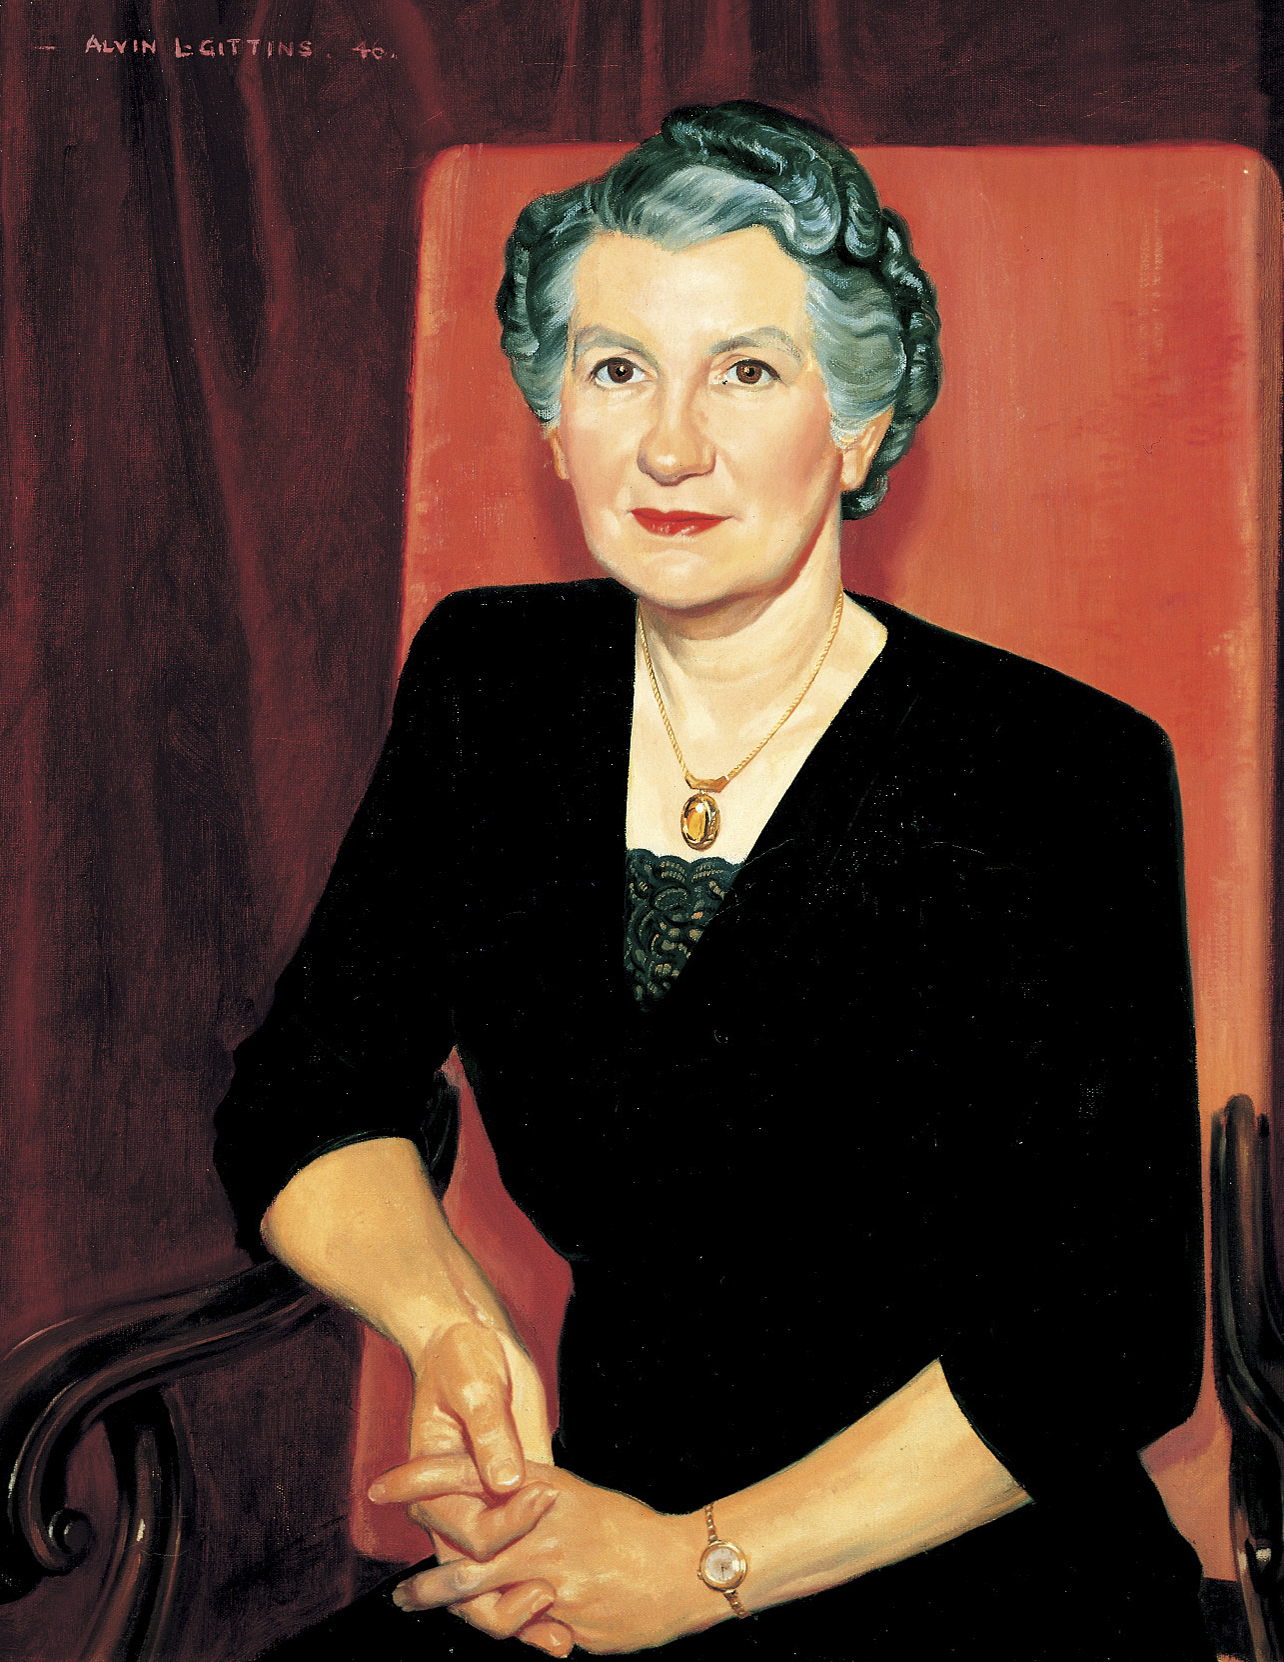 A portrait of Belle Smith Spafford, who was the ninth general president of the Relief Society from 1945 to 1974; painted by Alvin Gittins.